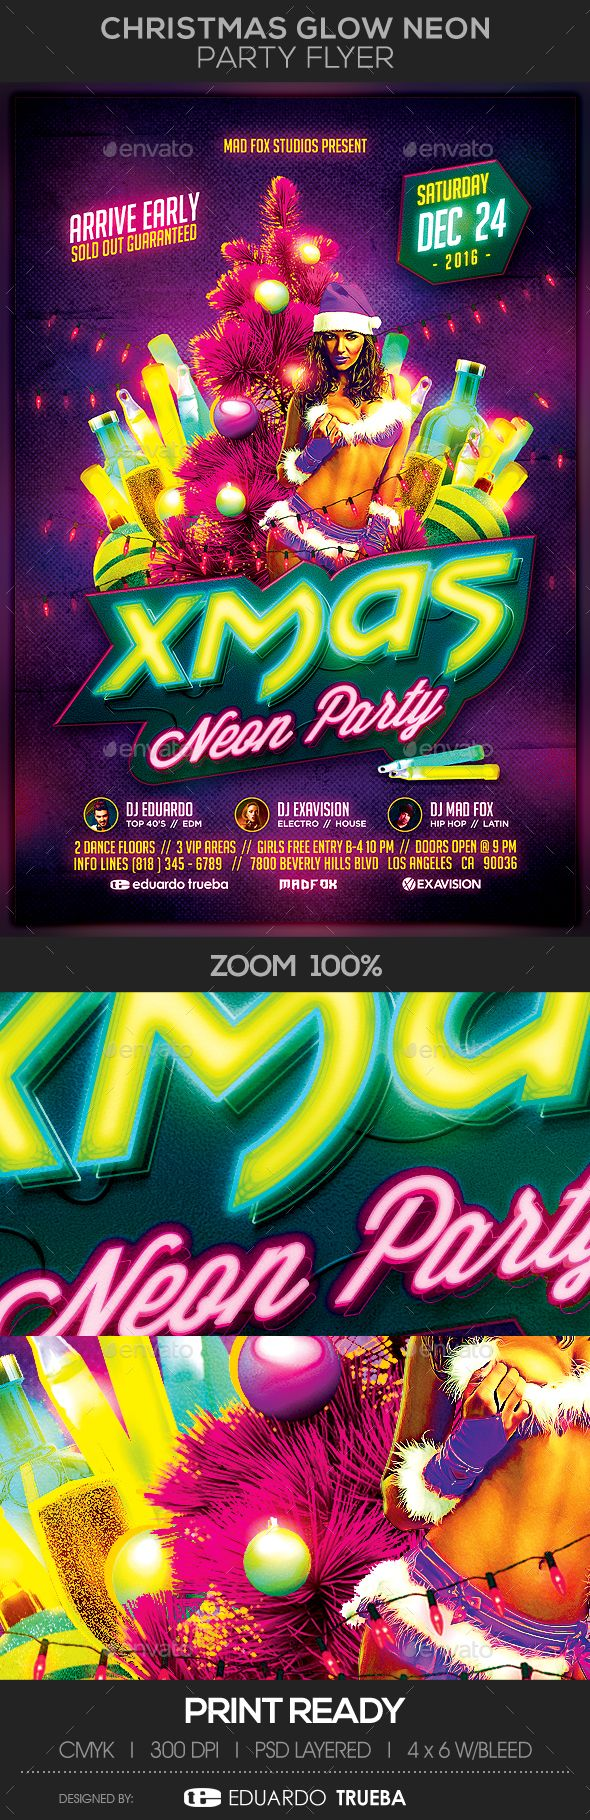 best images about christmas flyer templates christmas glow neon party flyer